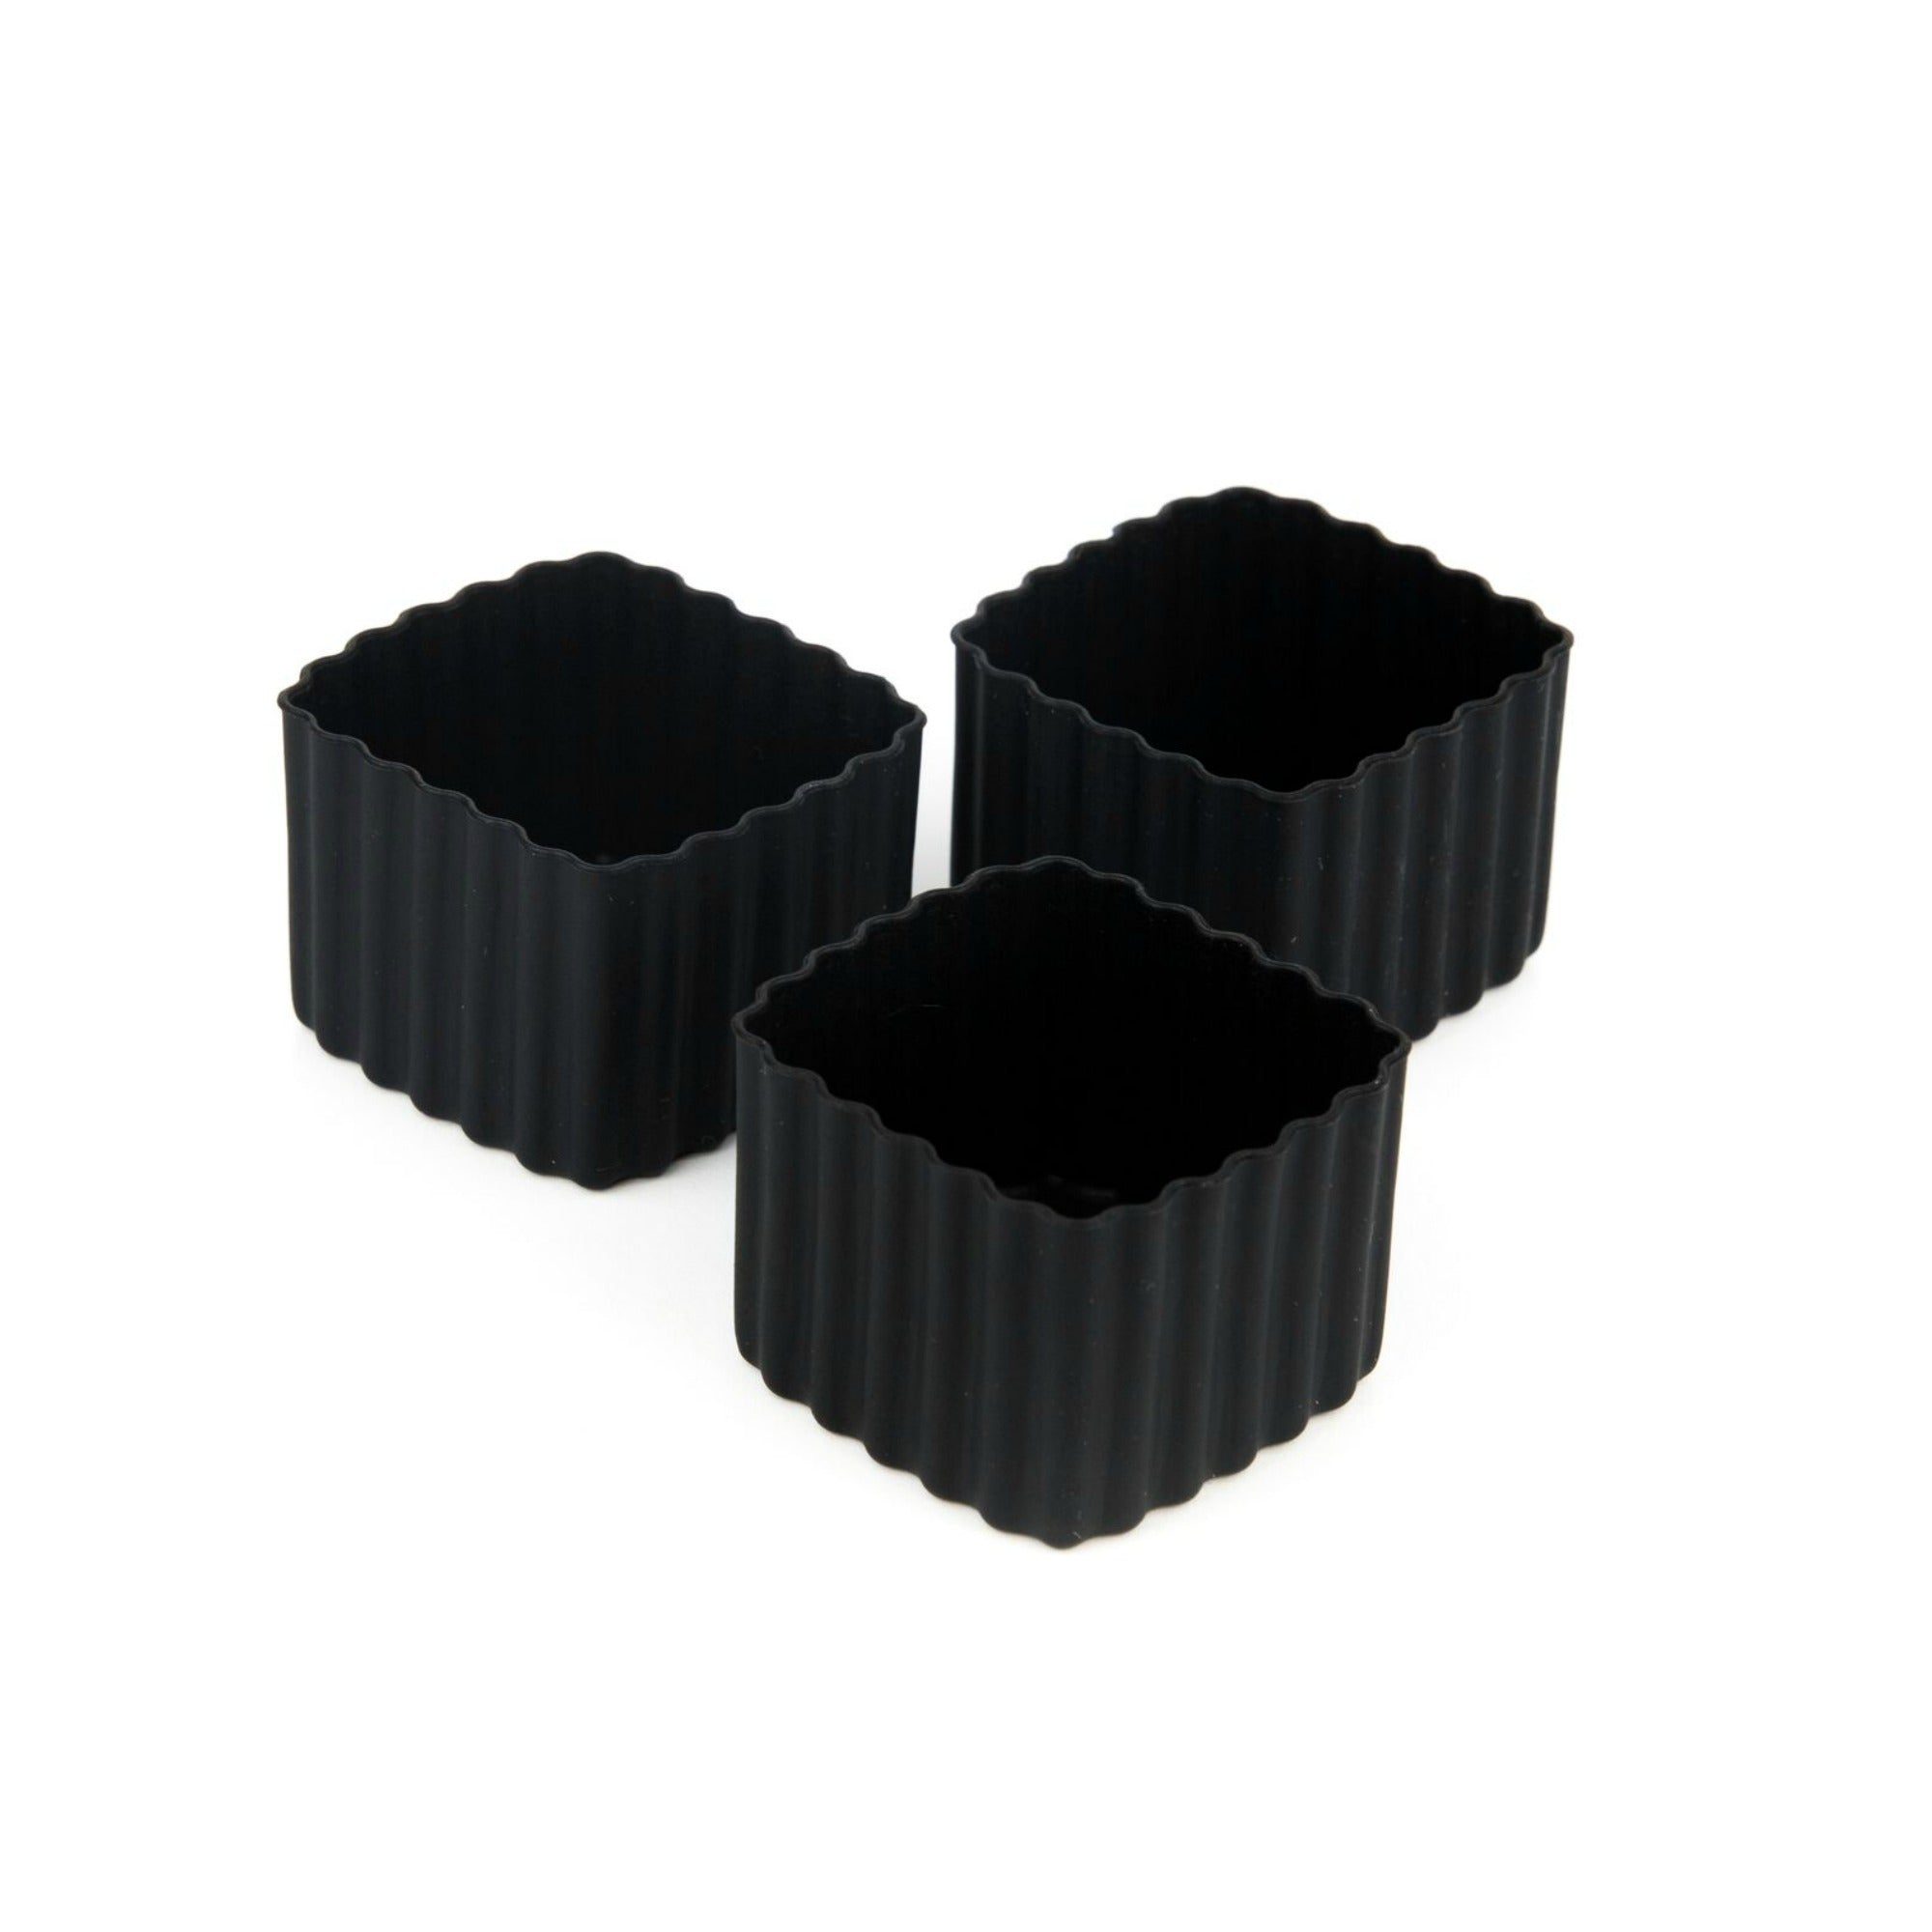 Little Lunch Box Co Square Bento Cups - Black